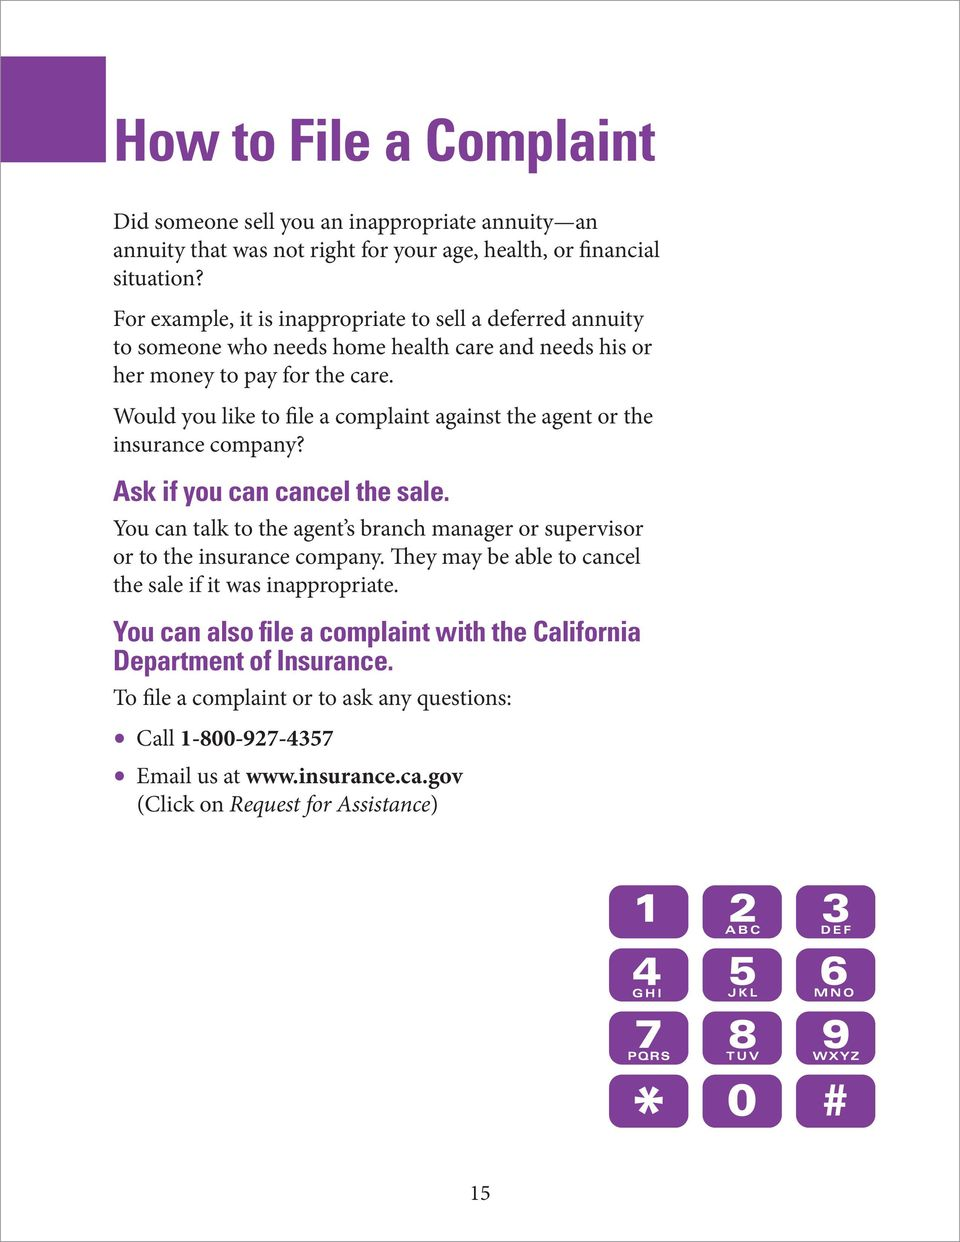 Would you like to file a complaint against the agent or the insurance company? Ask if you can cancel the sale.